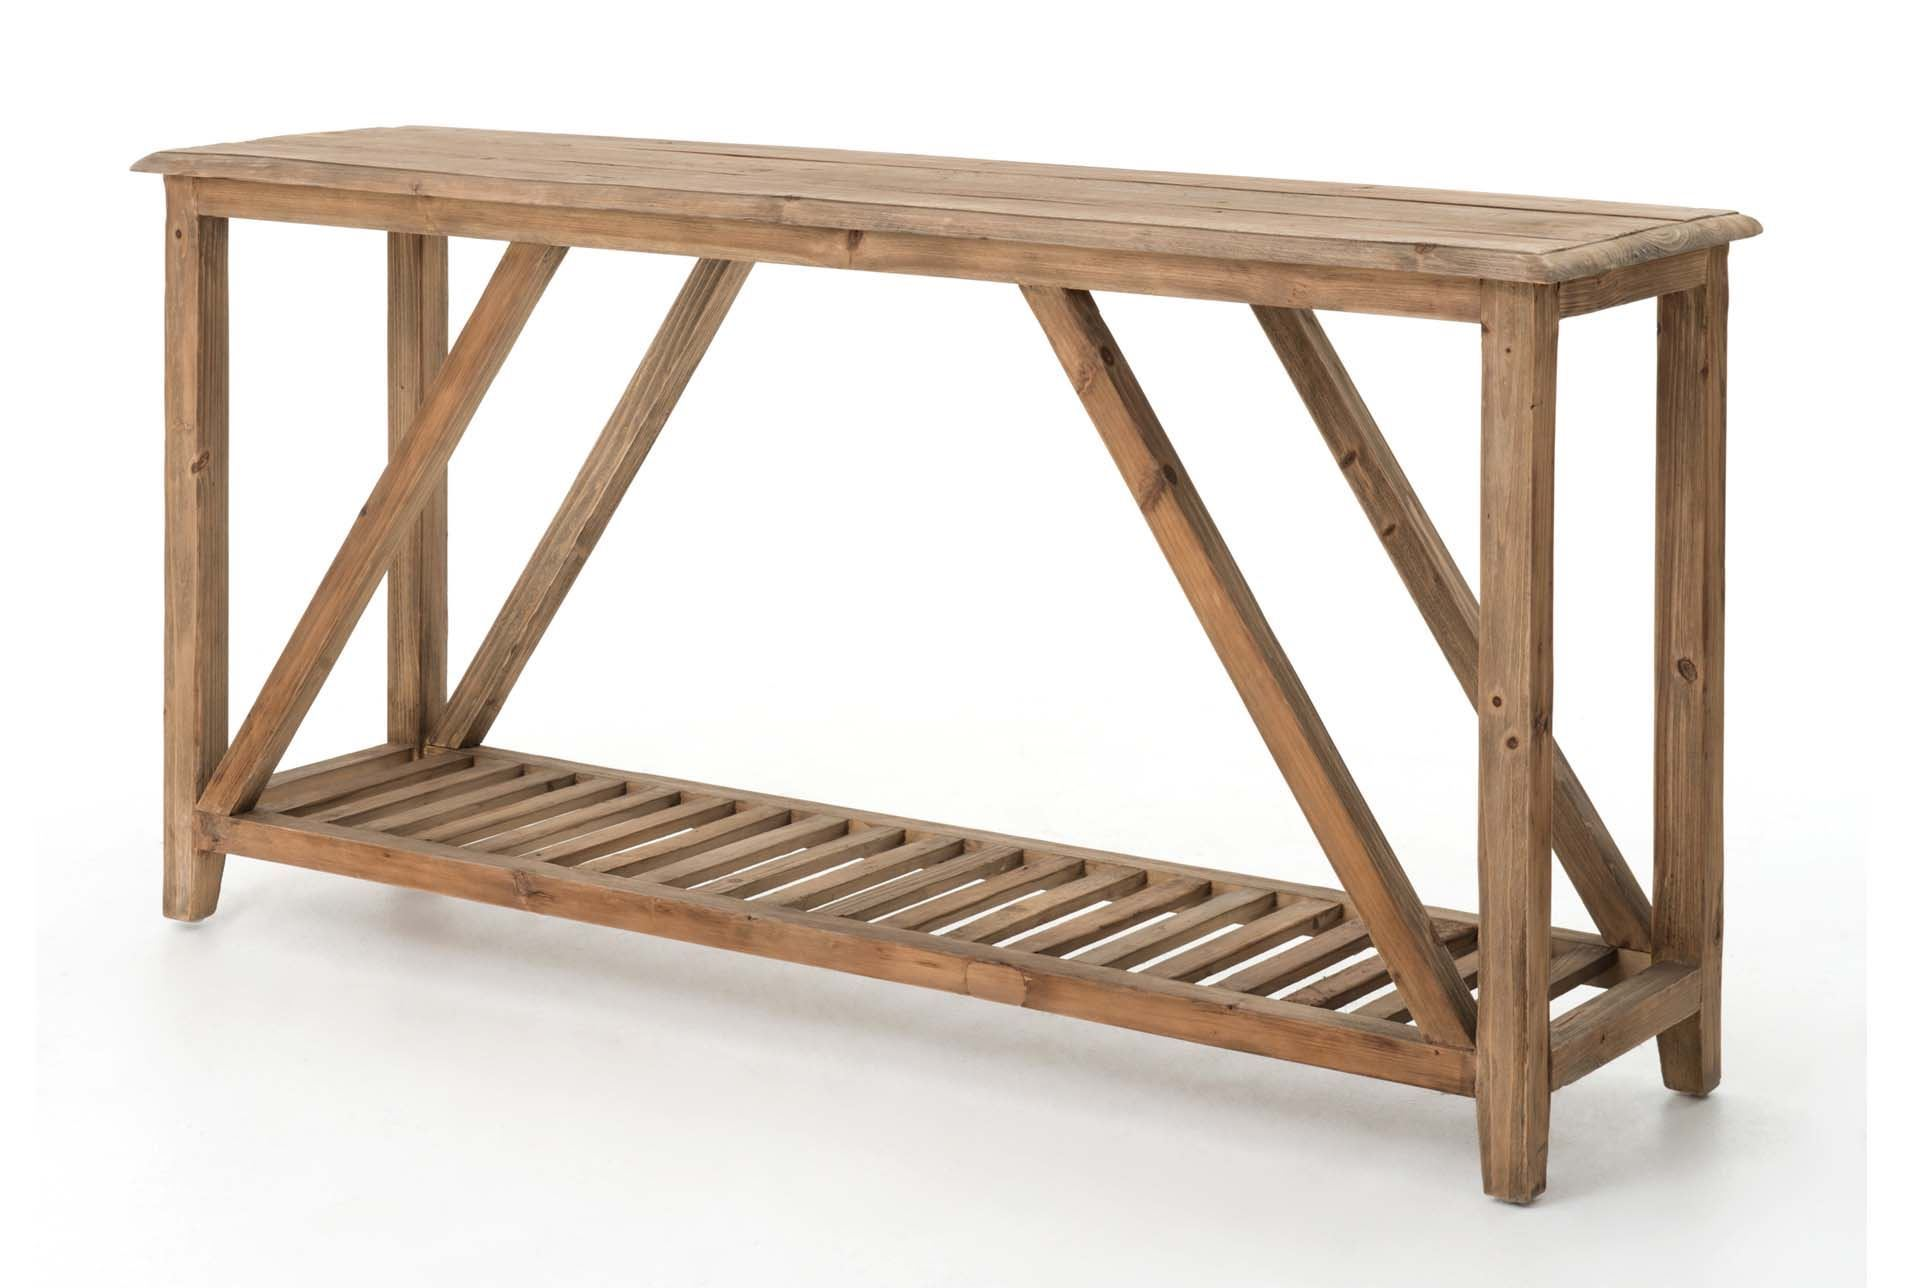 Otb caden console table living spaces for Living spaces sofa table